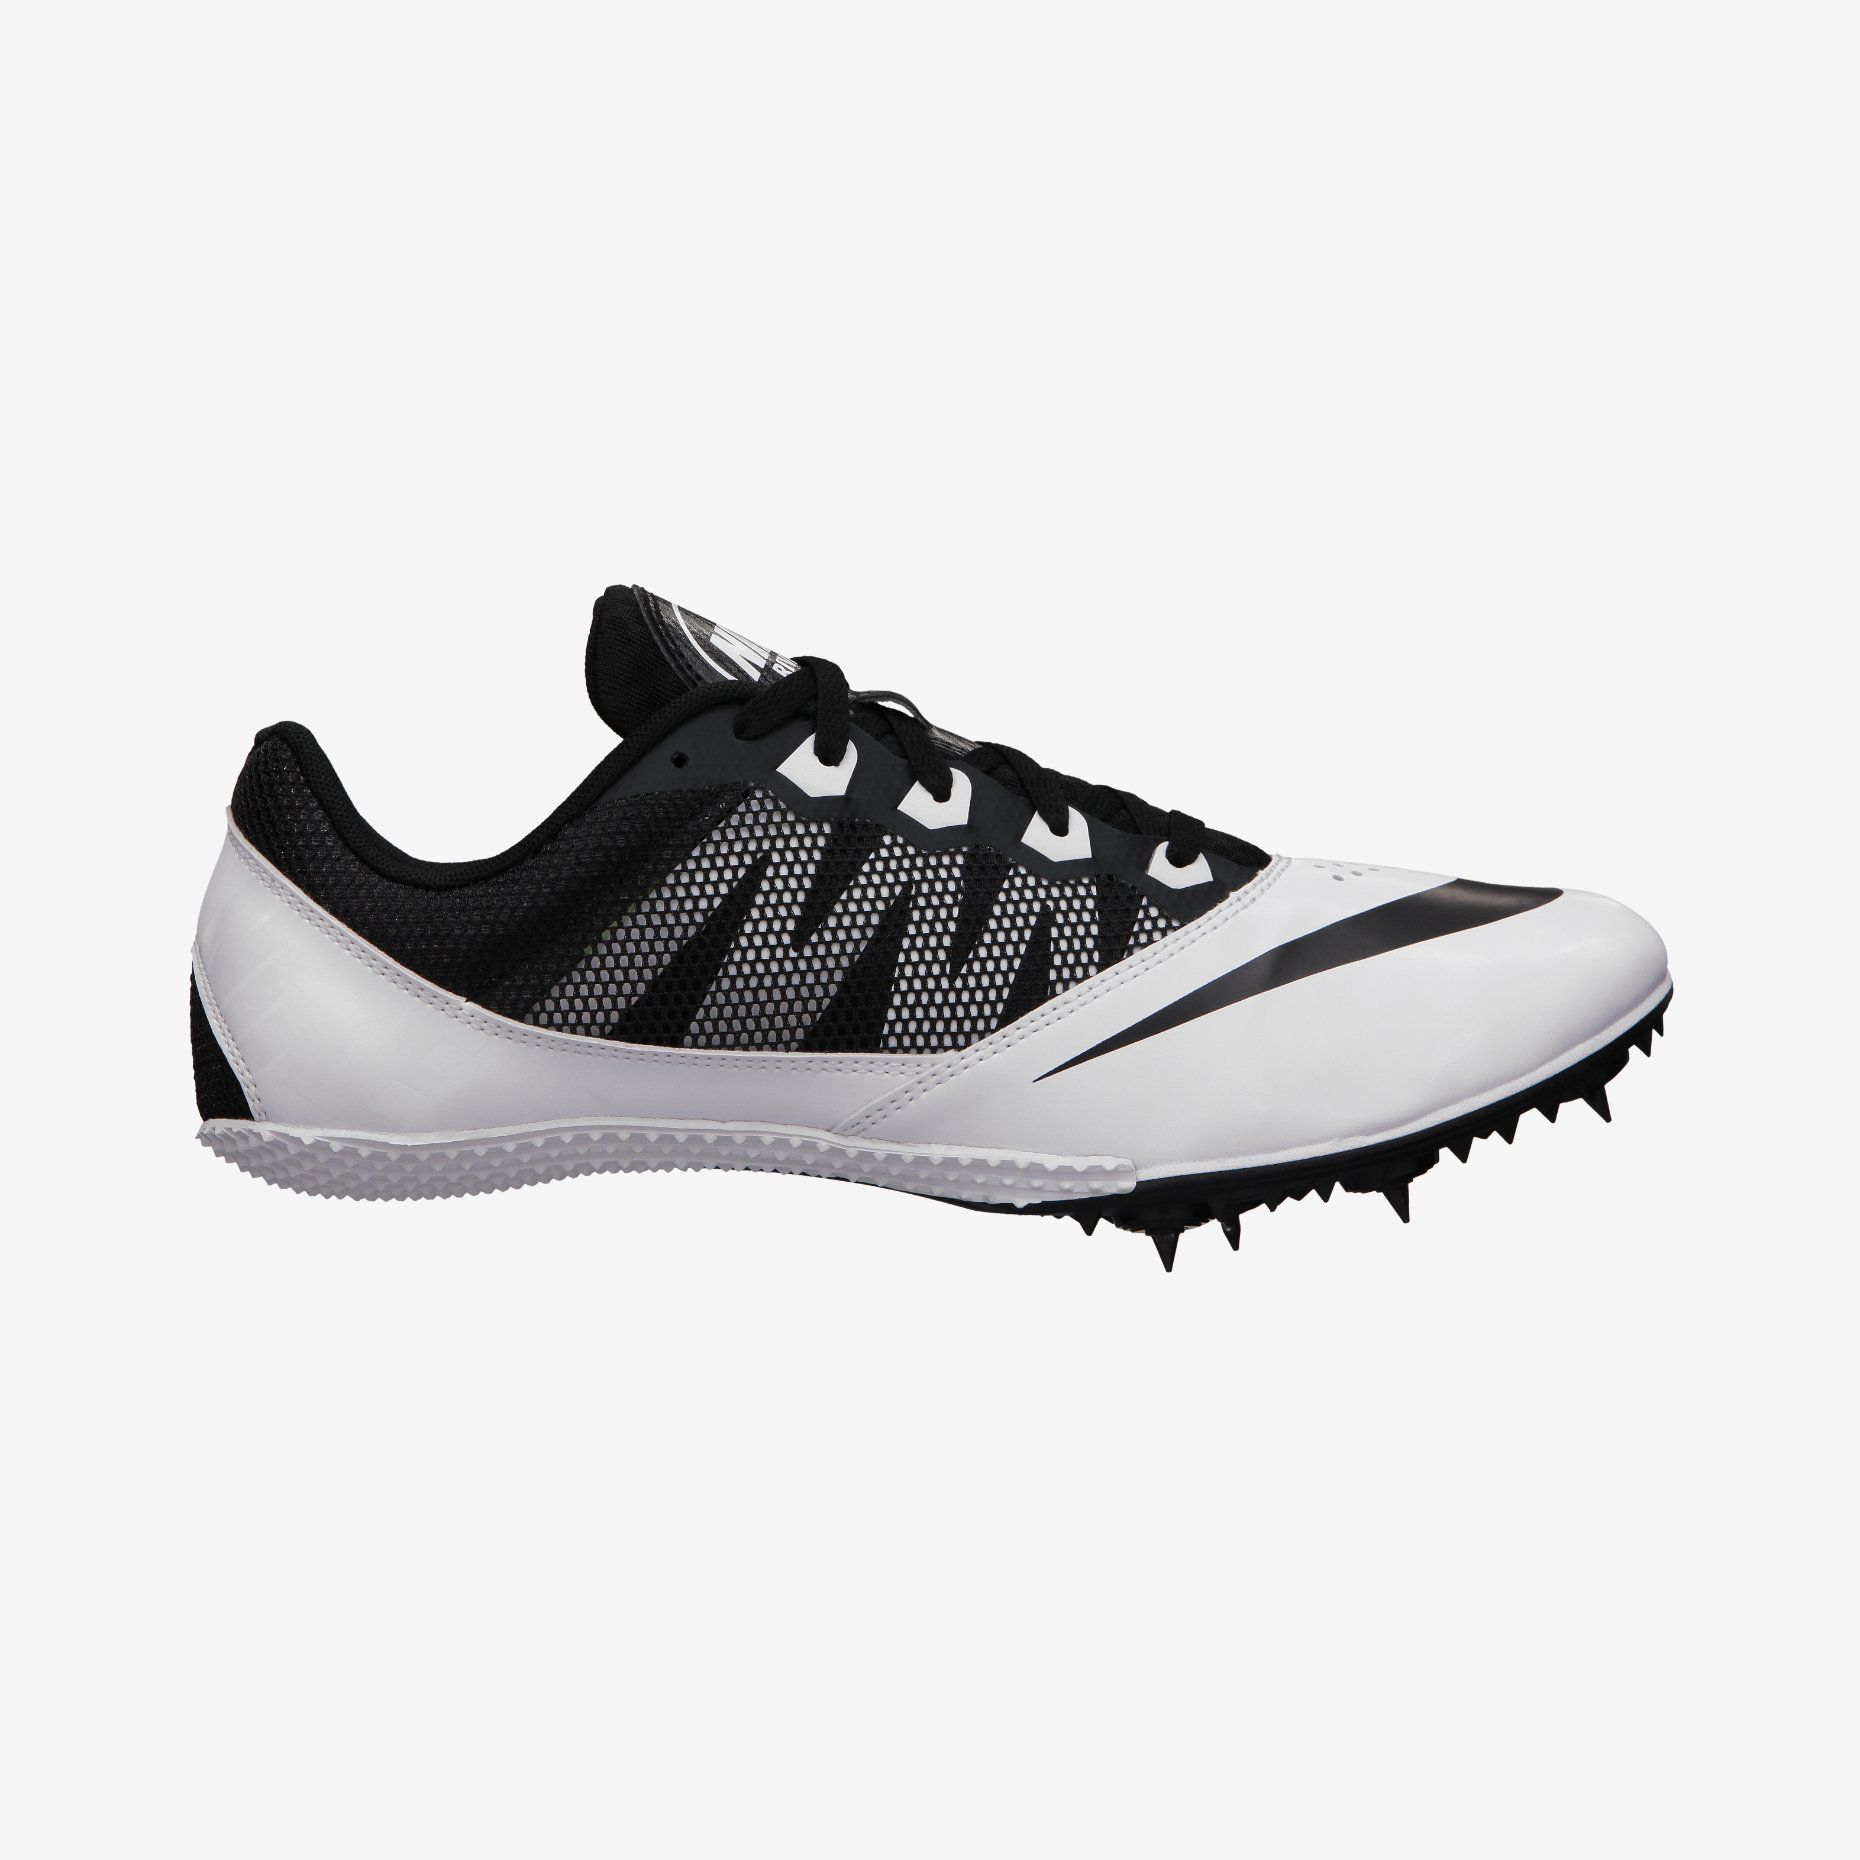 new style b979f 4a523 Nike Store. Nike Zoom Rival S 7 Mens Track Spike